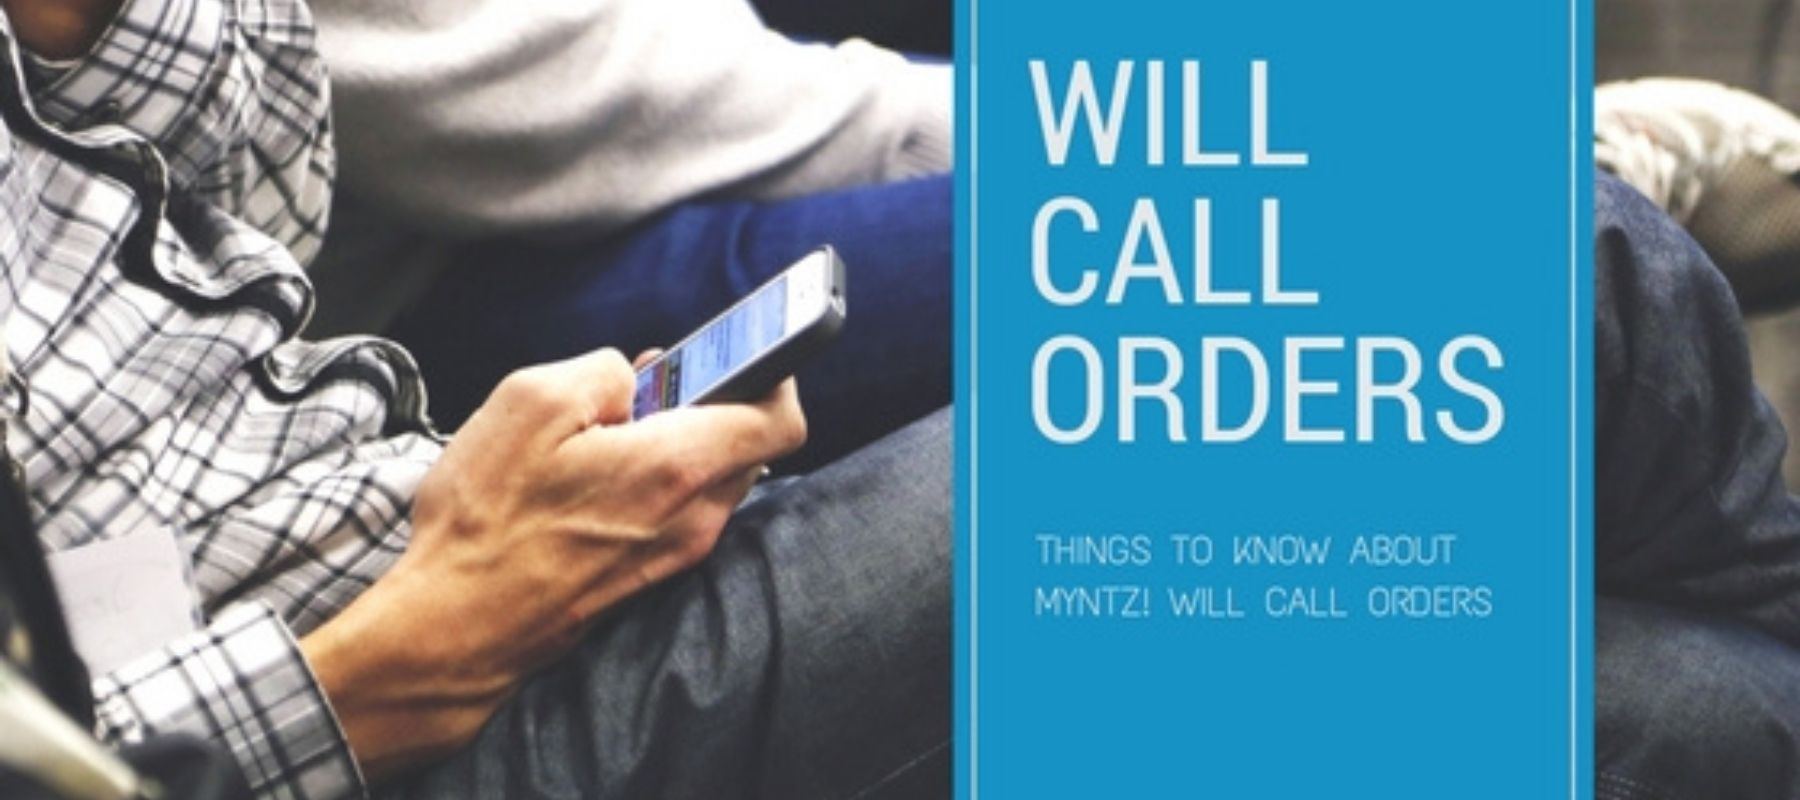 Man checking phone for Myntz! Will-Call orders